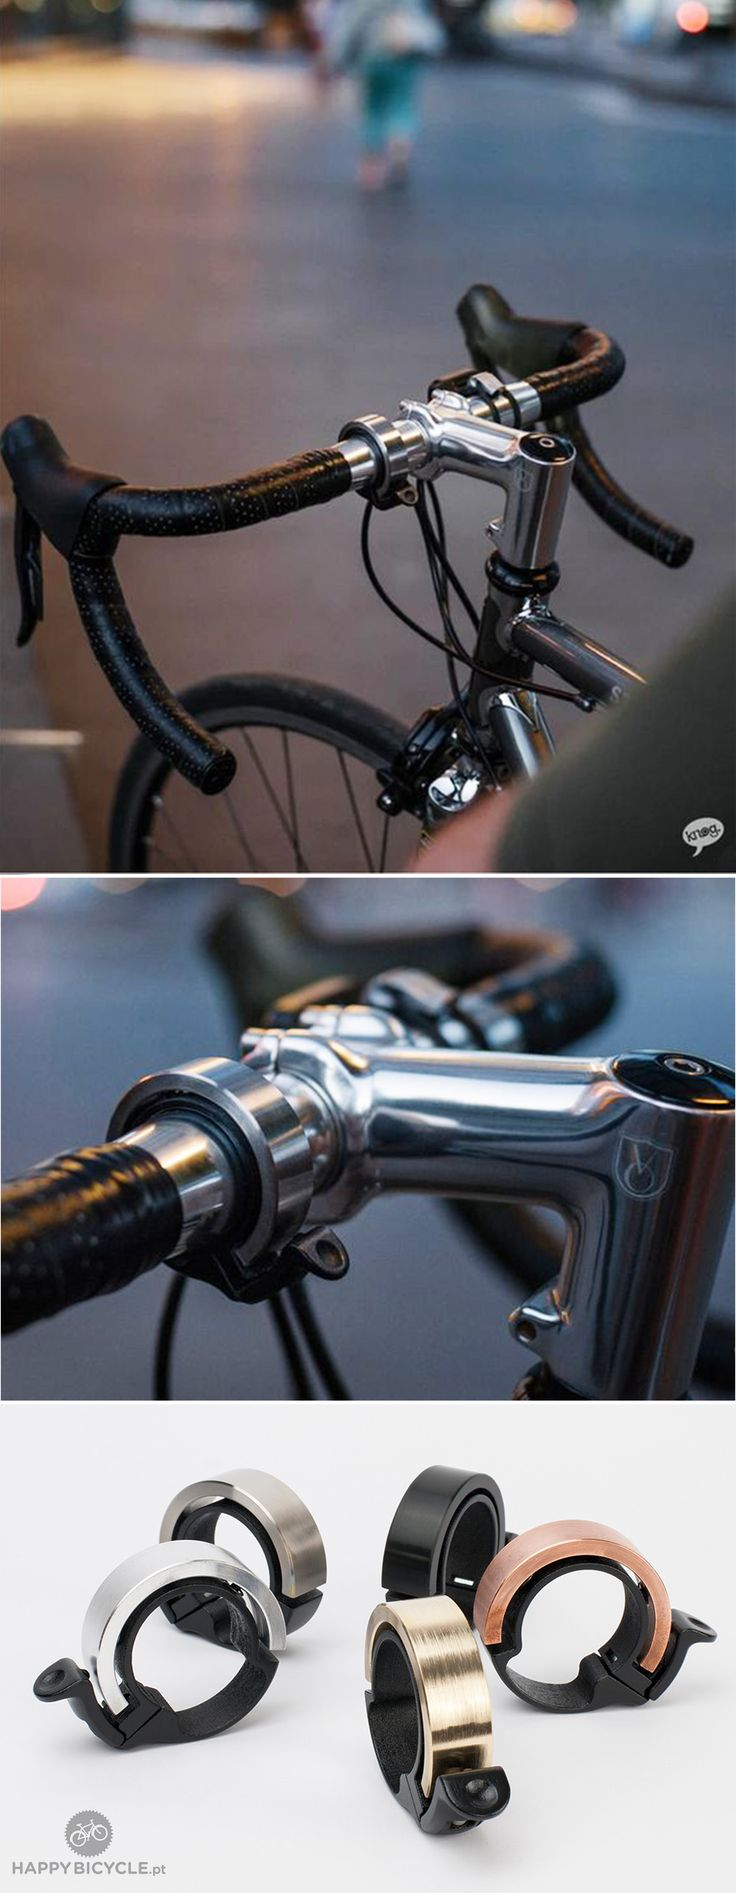 Bike bells generally look and sound a bit ugly. But why? What if they looked sexy and subtle - Oi Bike Bell | HappyBike.eu